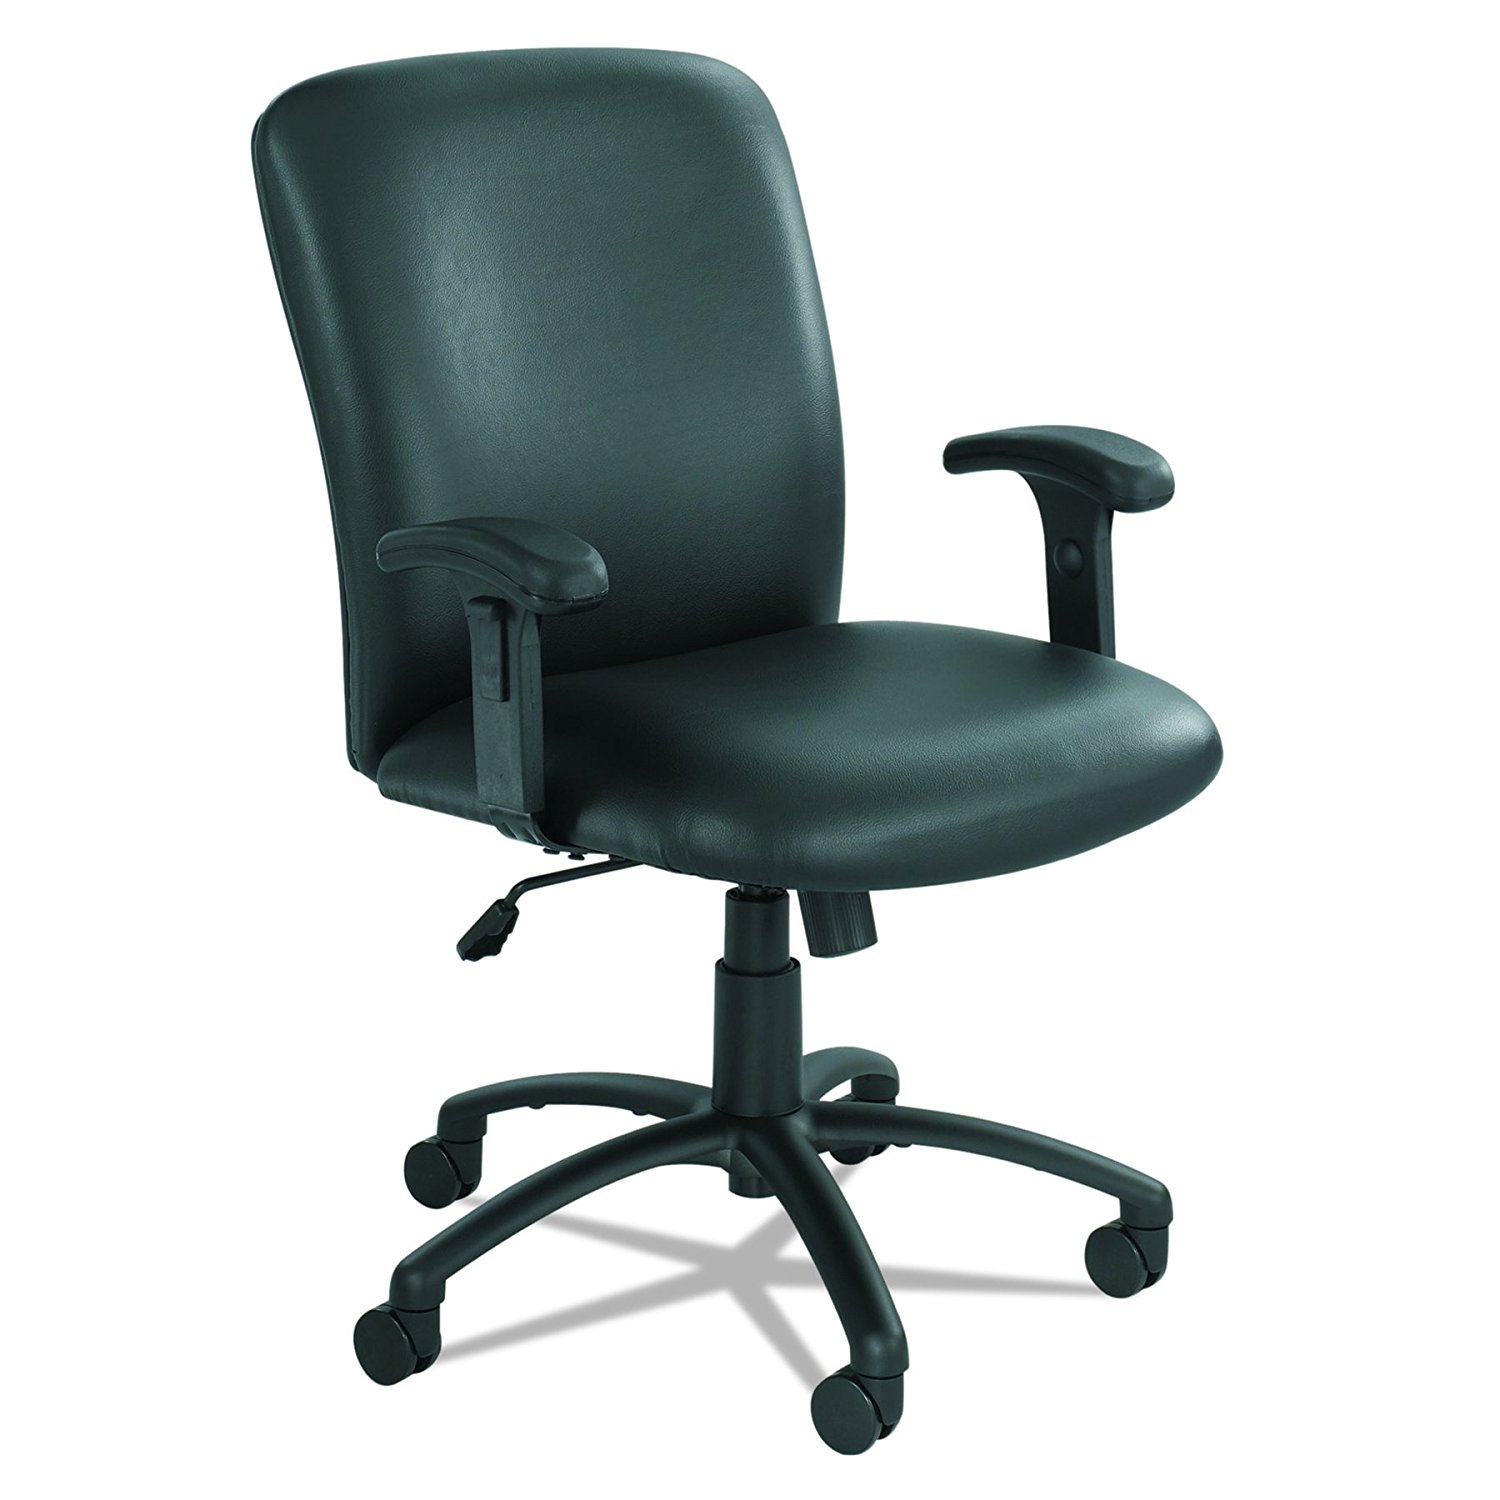 Safeco Uber Big And Tall Office Chair For Heavy People 500